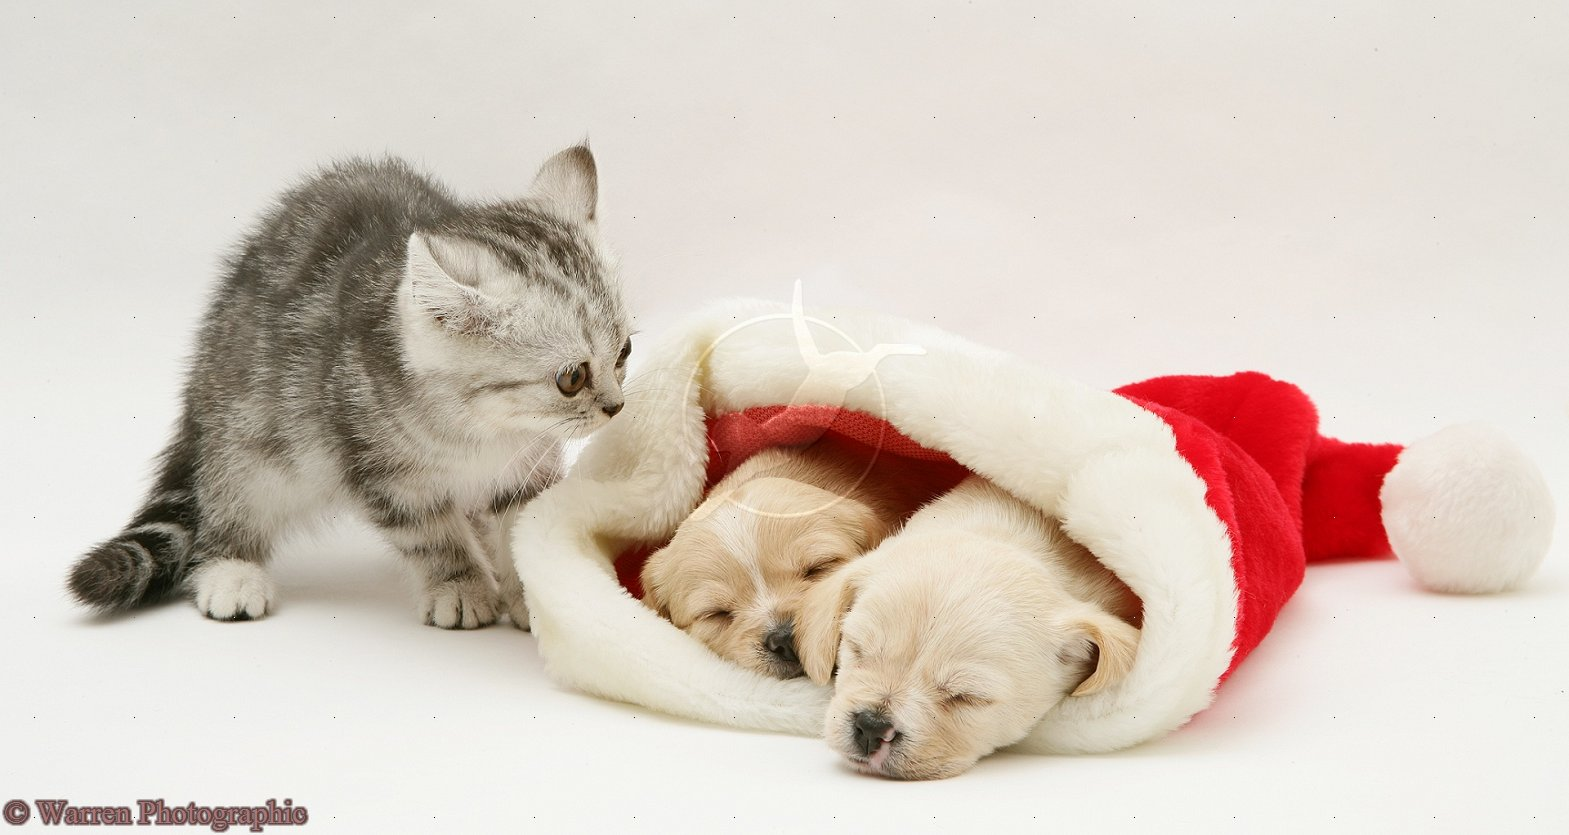 Cute Puppies And Kittens Wallpaper: [48+] Cute Puppy And Kitten Wallpapers On WallpaperSafari